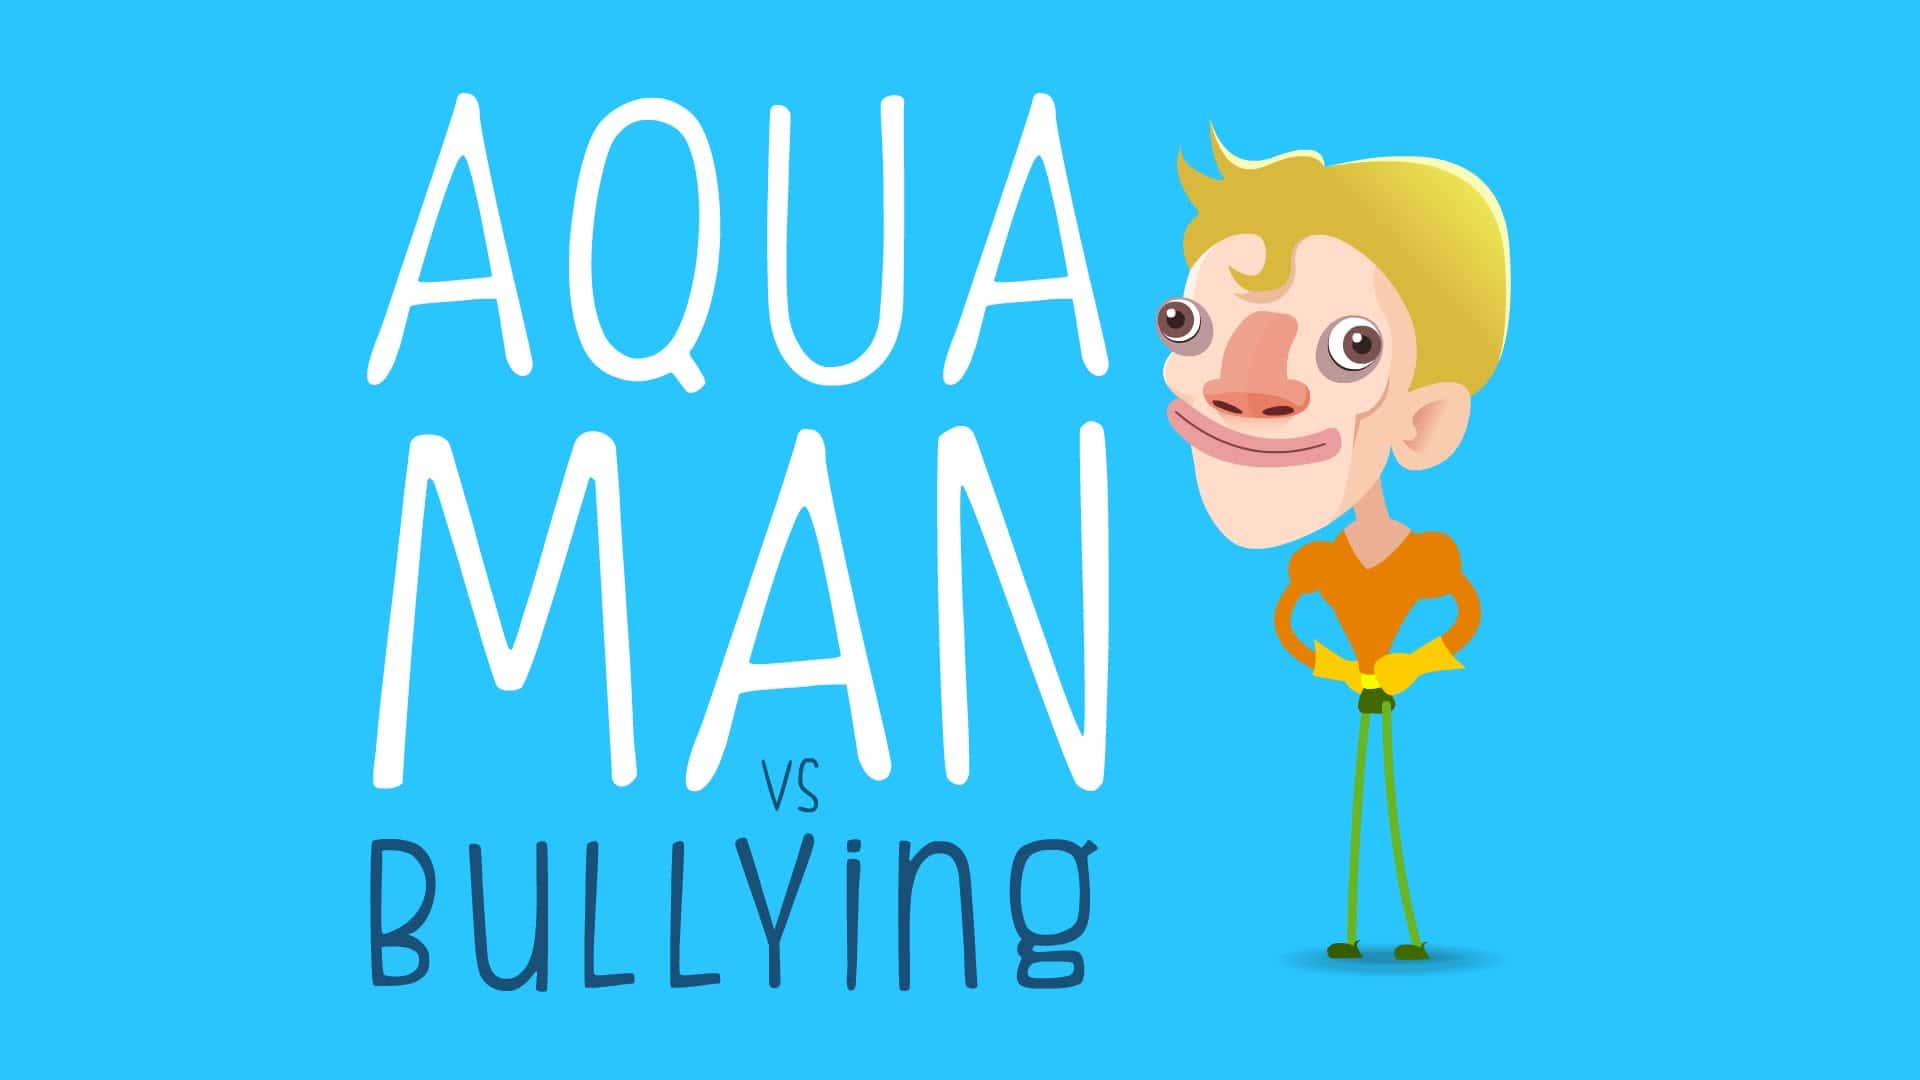 Aquaman contra o Bullying